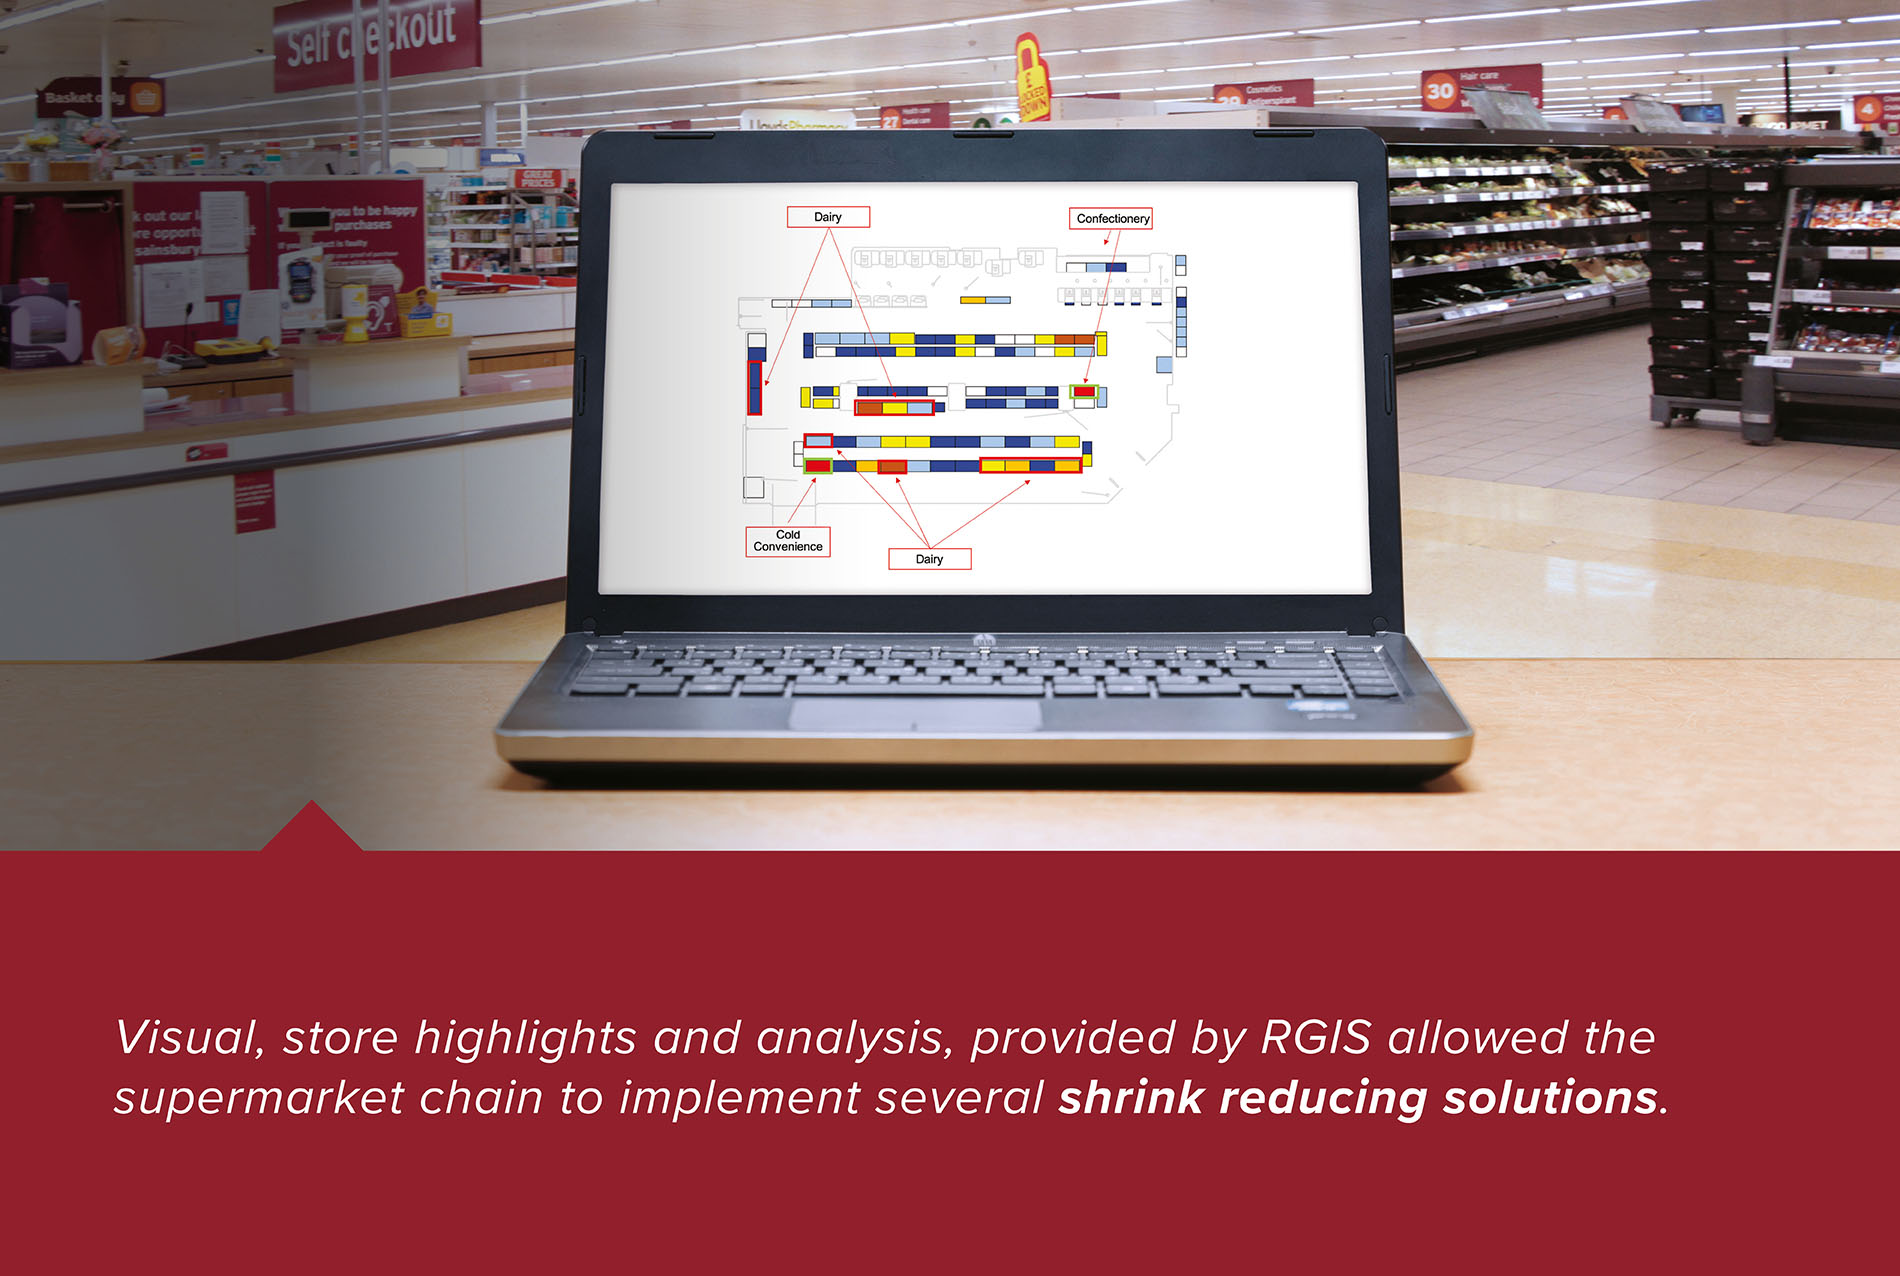 RGIS Case Study of Visual Store Insights